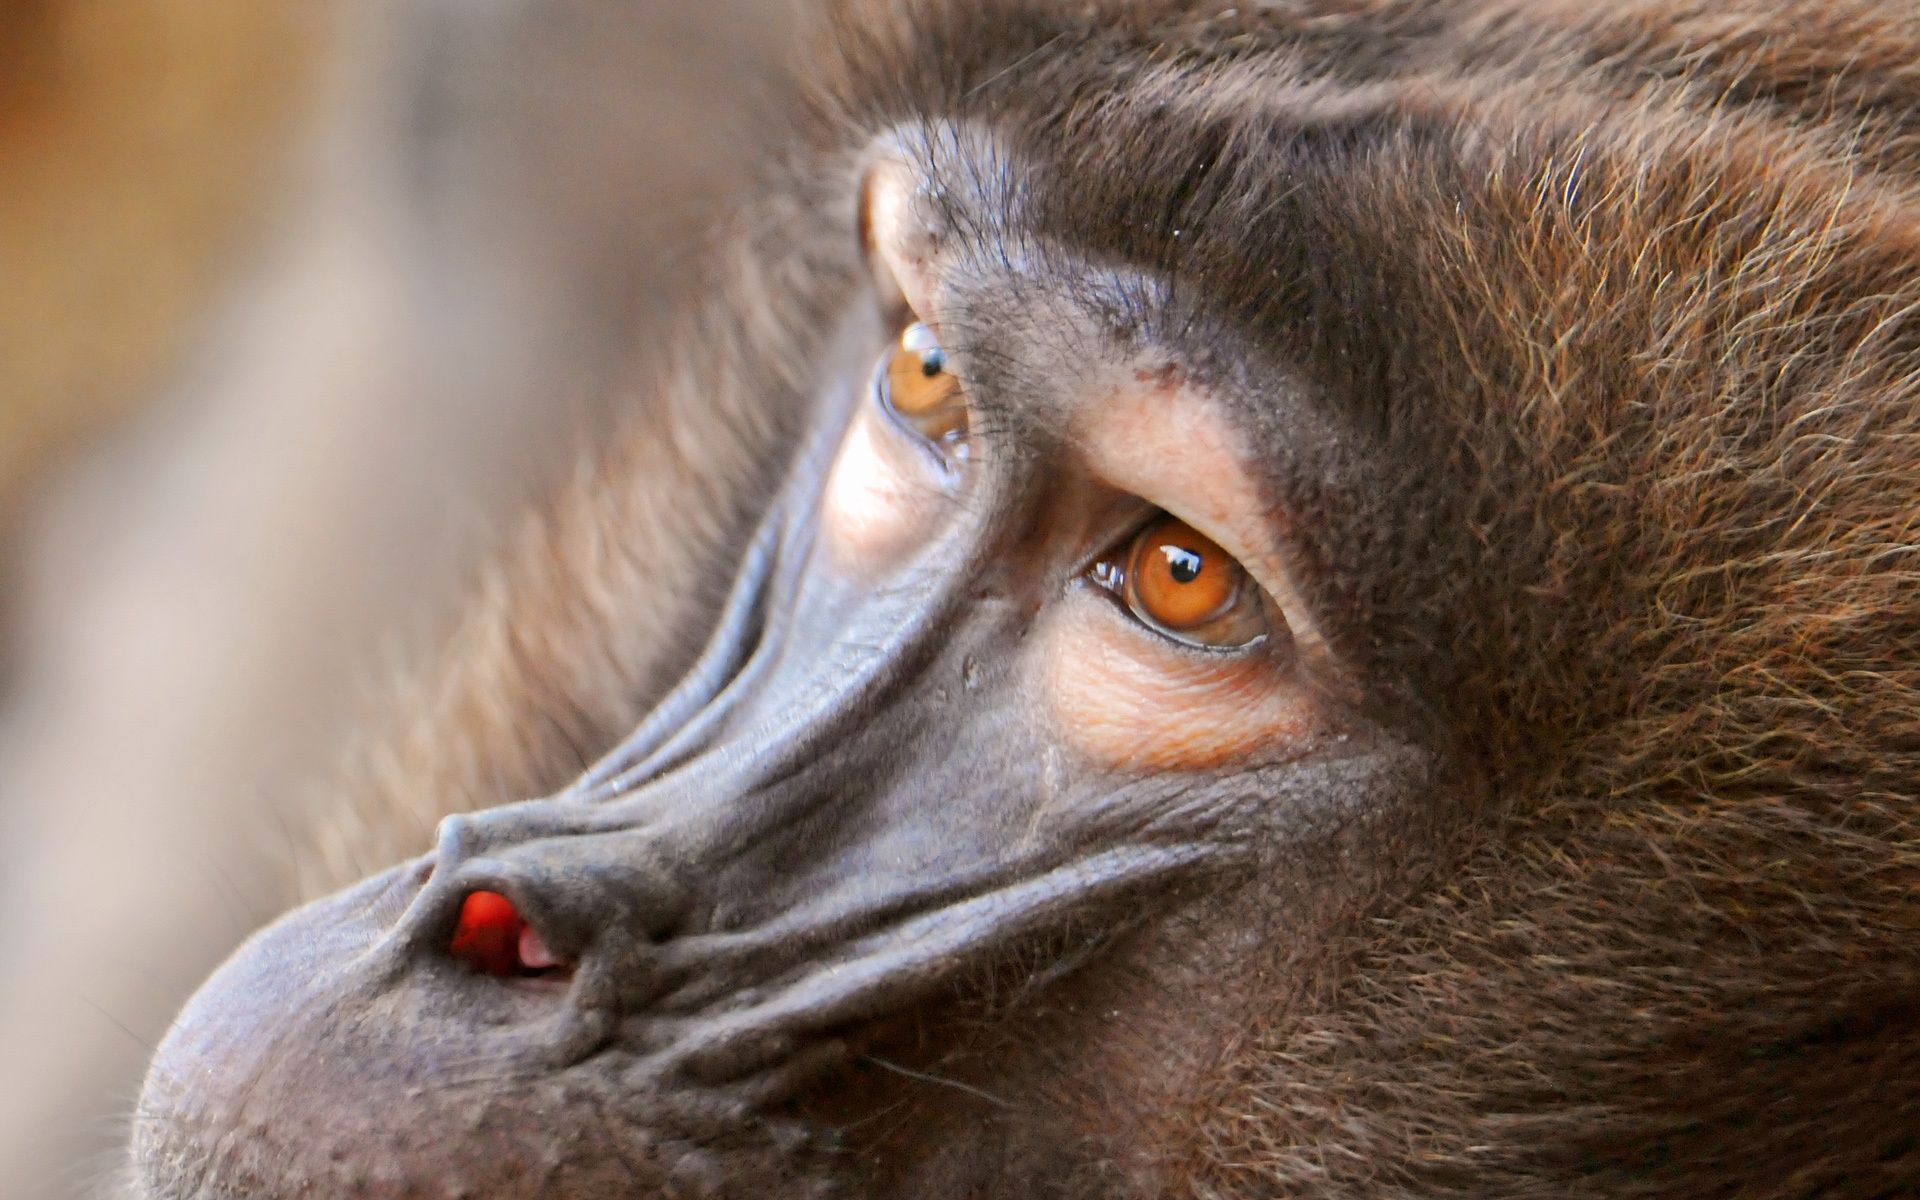 Baboon Animal Eyes Wallpaper 59962 1920x1200 px ~ HDWallSource.com